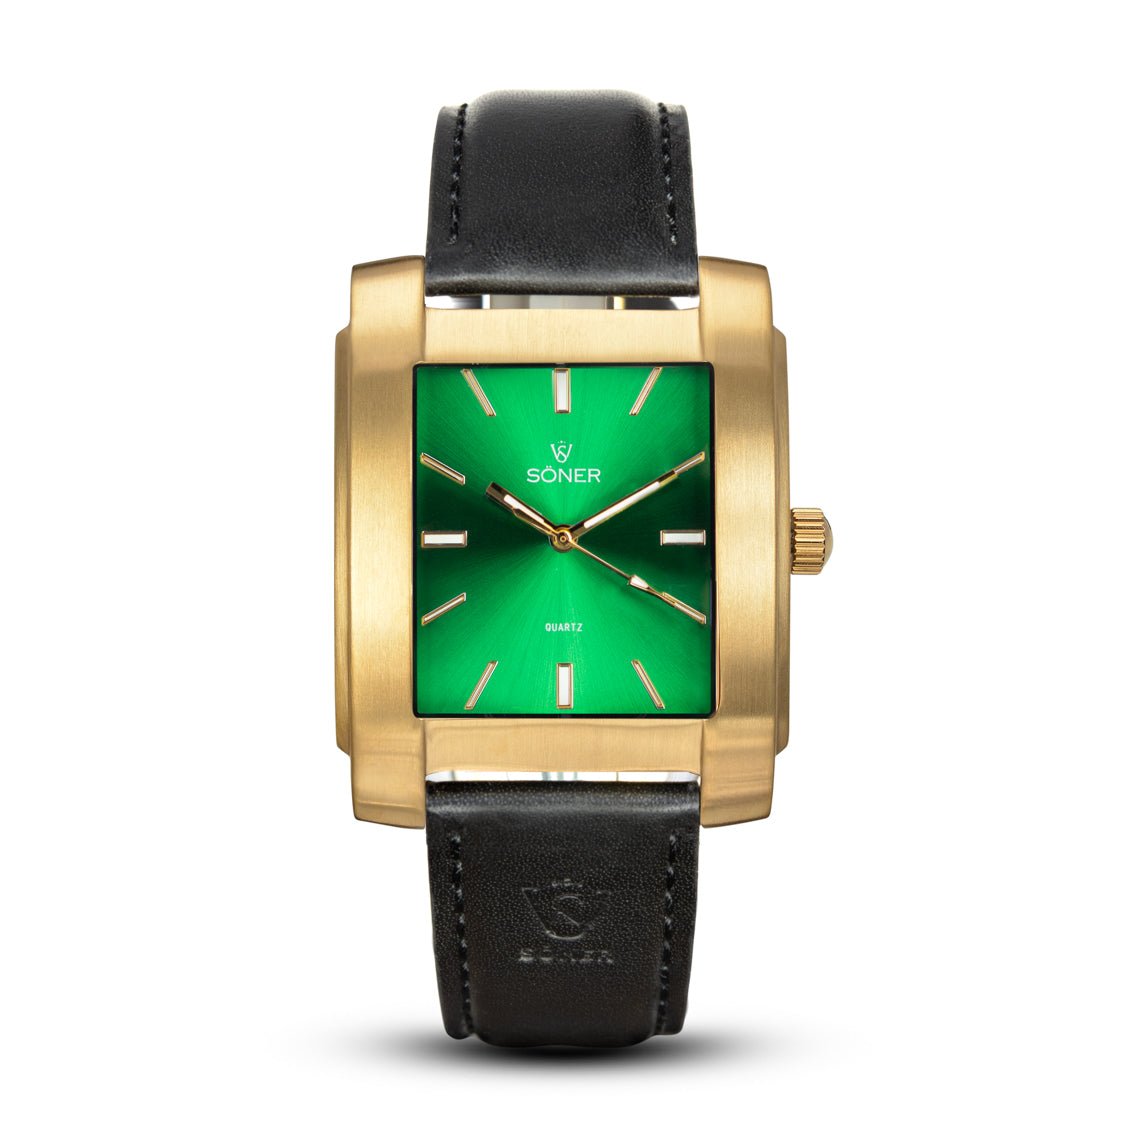 SQUARE MEN'S WATCH - LEGACY L Brushed gold - Green dial